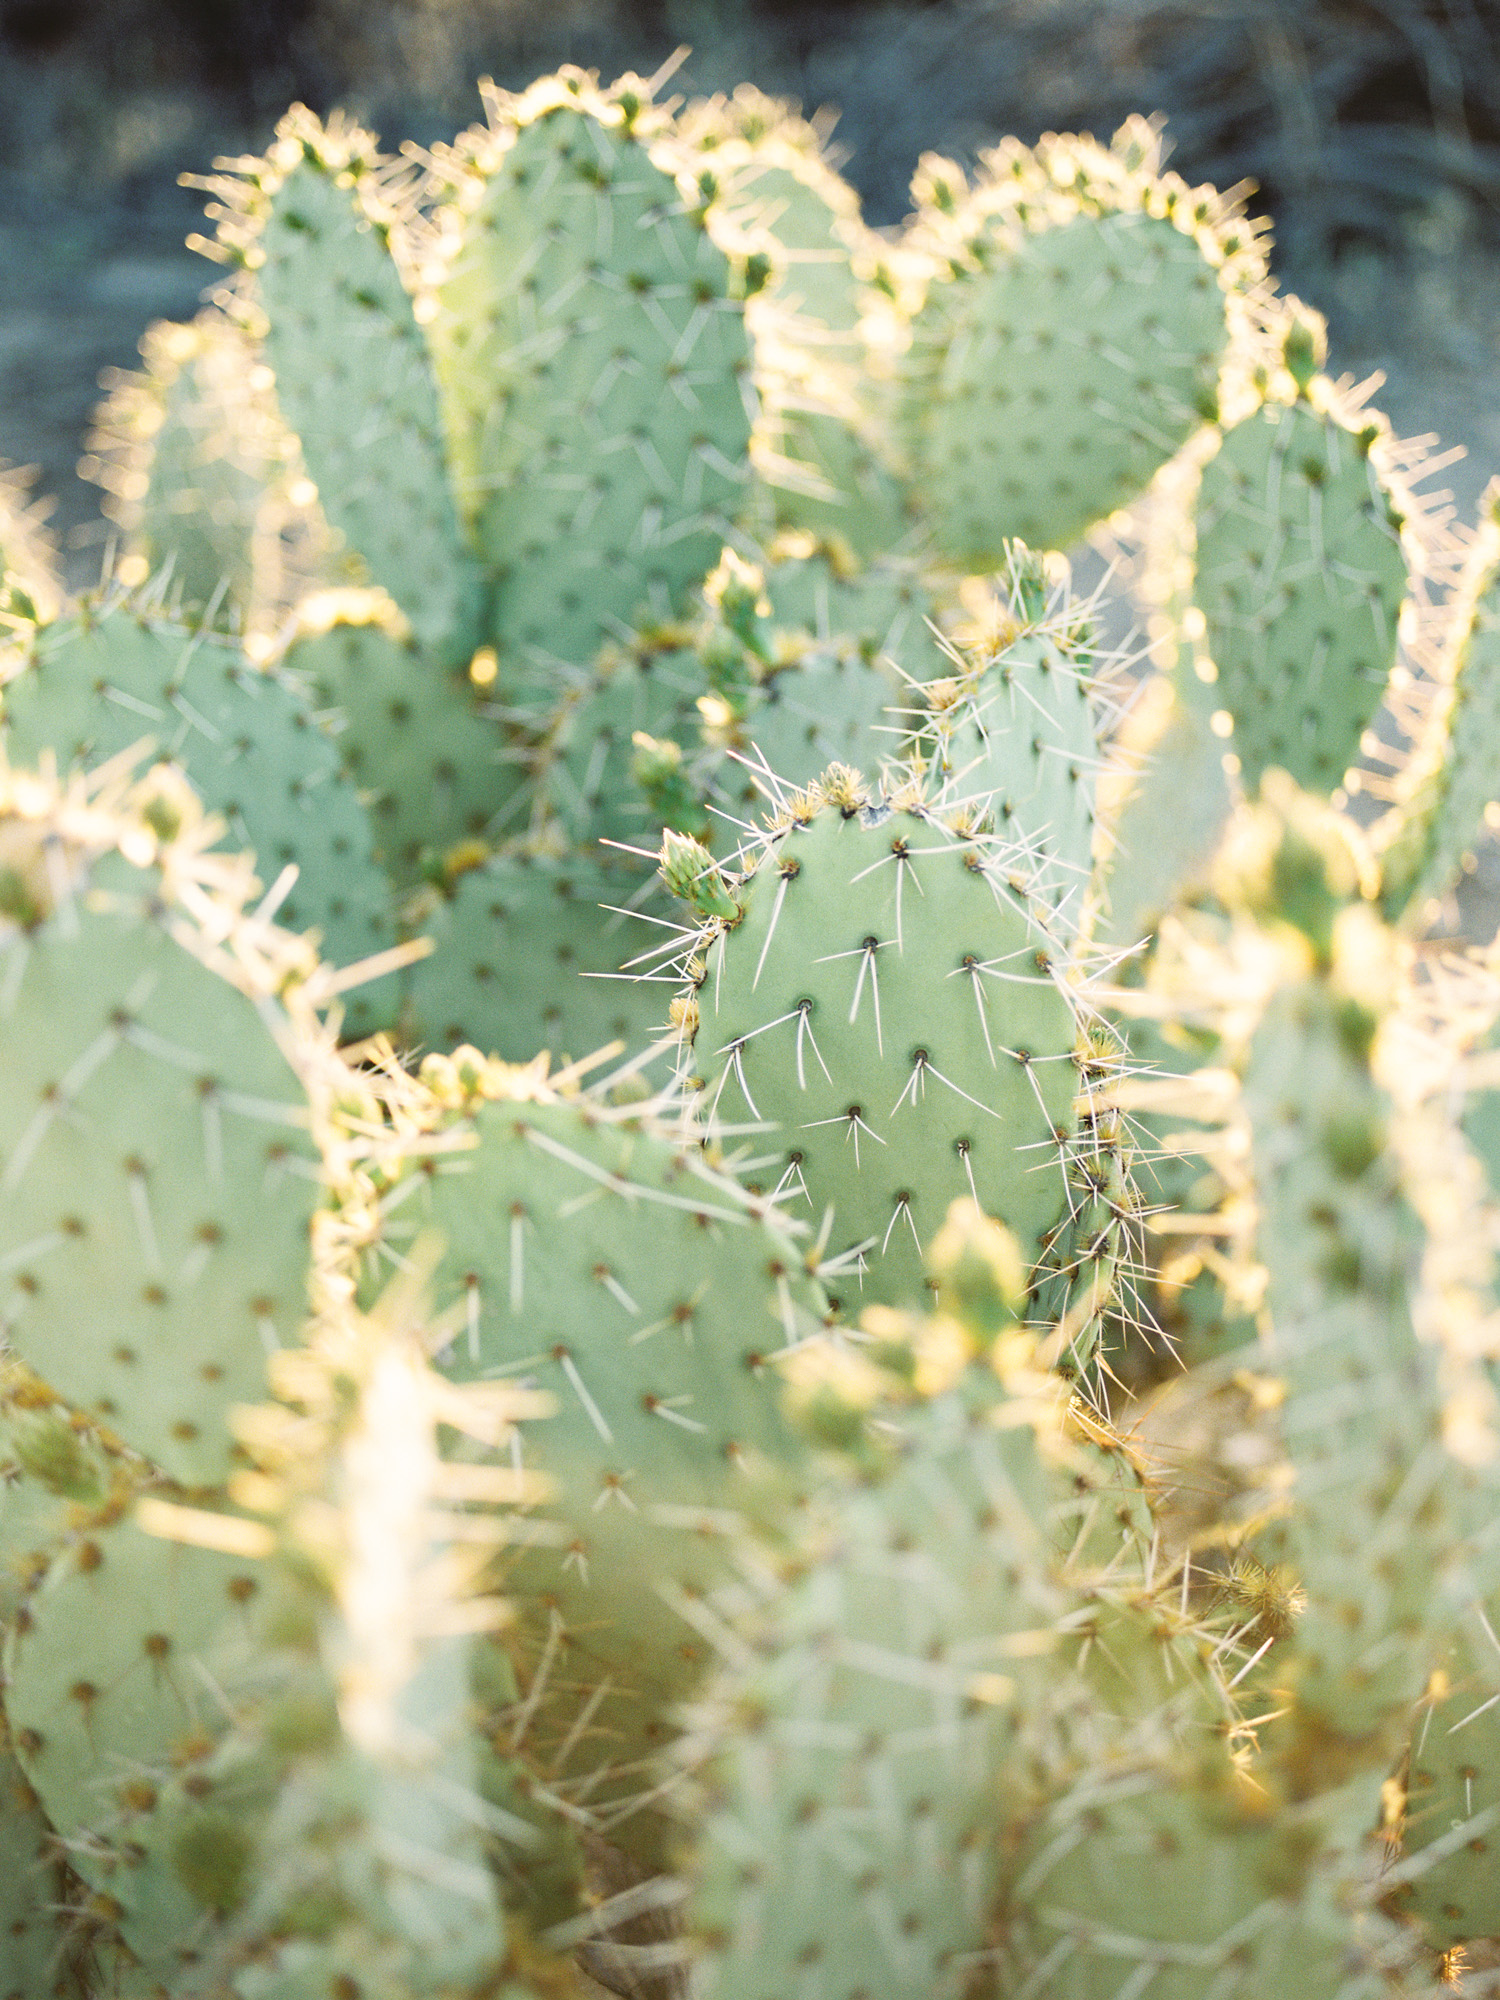 Gorgeous Tucson sunset lighting on prickly pear cactus